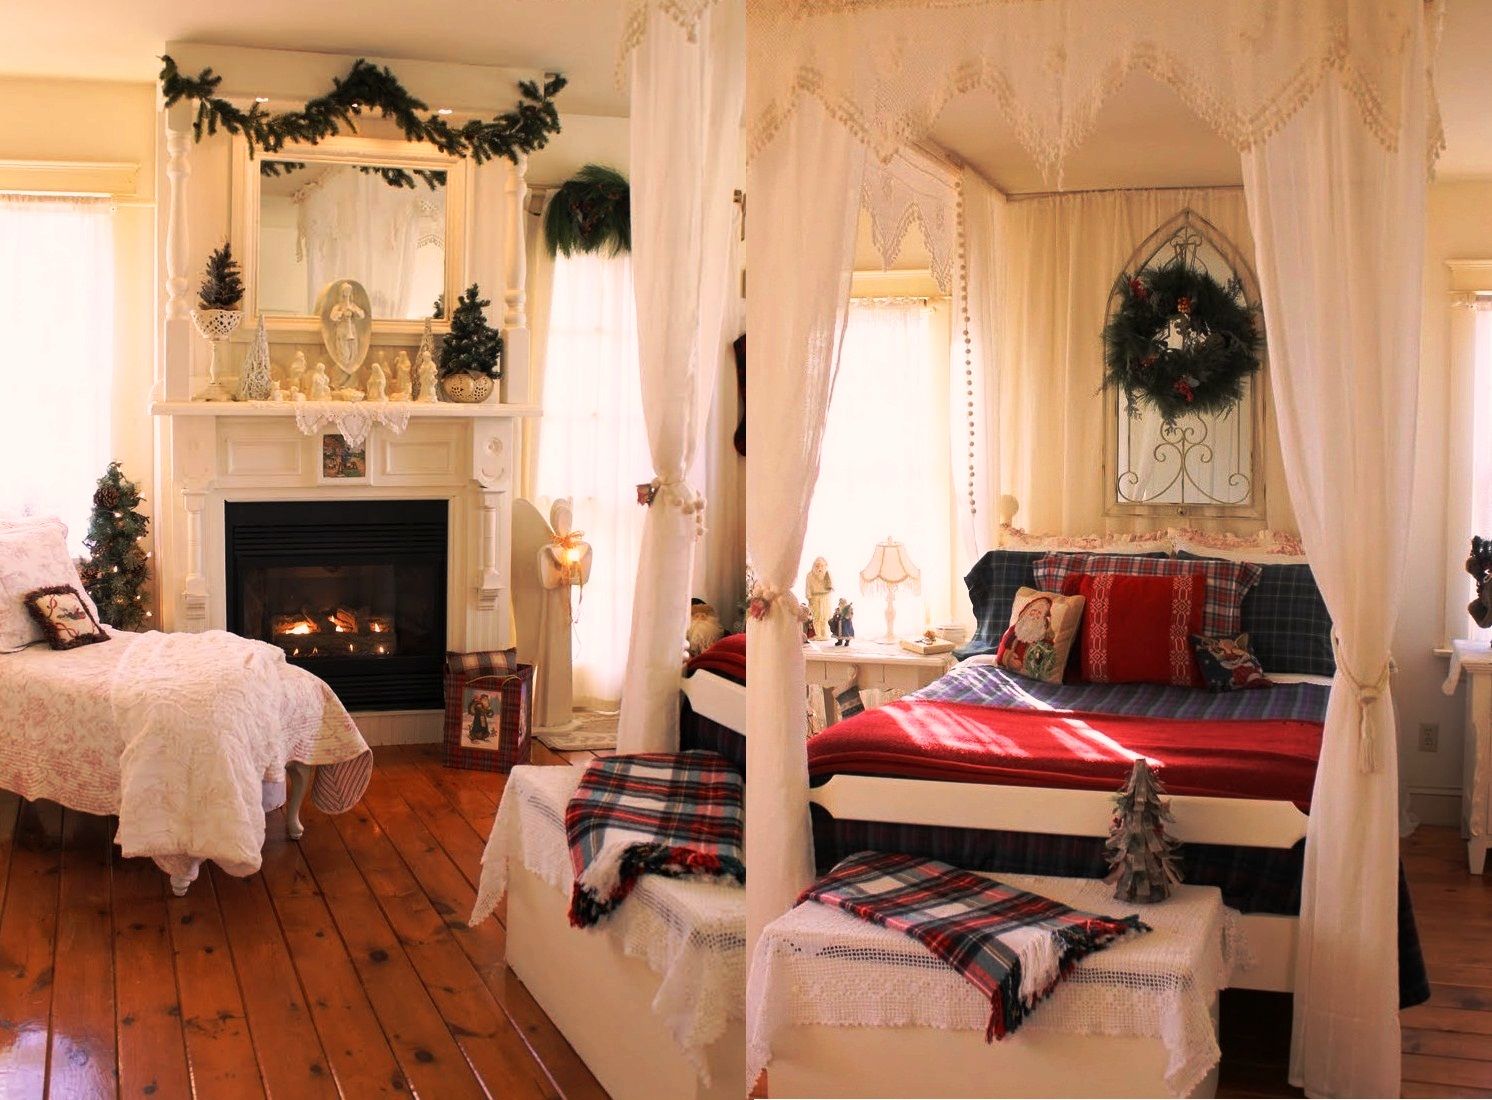 30 christmas bedroom decorations ideas for Beautiful house decoration